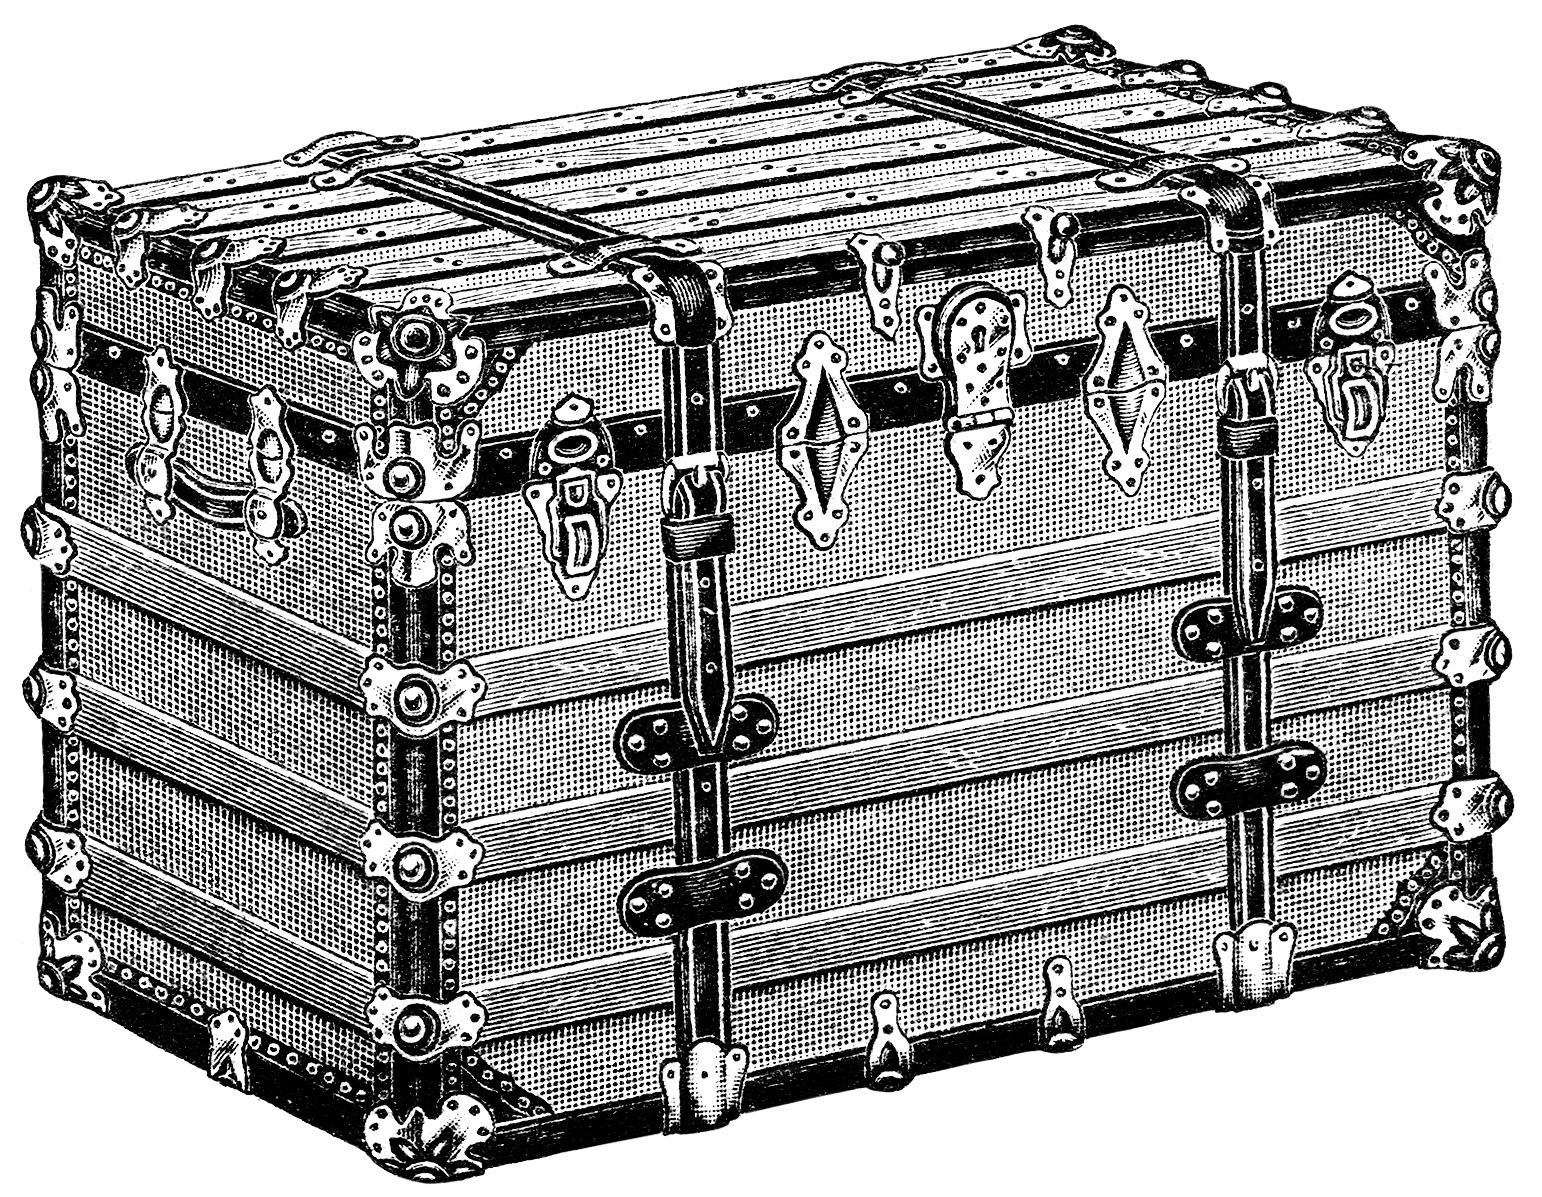 vintage trunk clipart, antique trunk illustration, battleship trunk image, black and white clip art free, vintage catalog ad